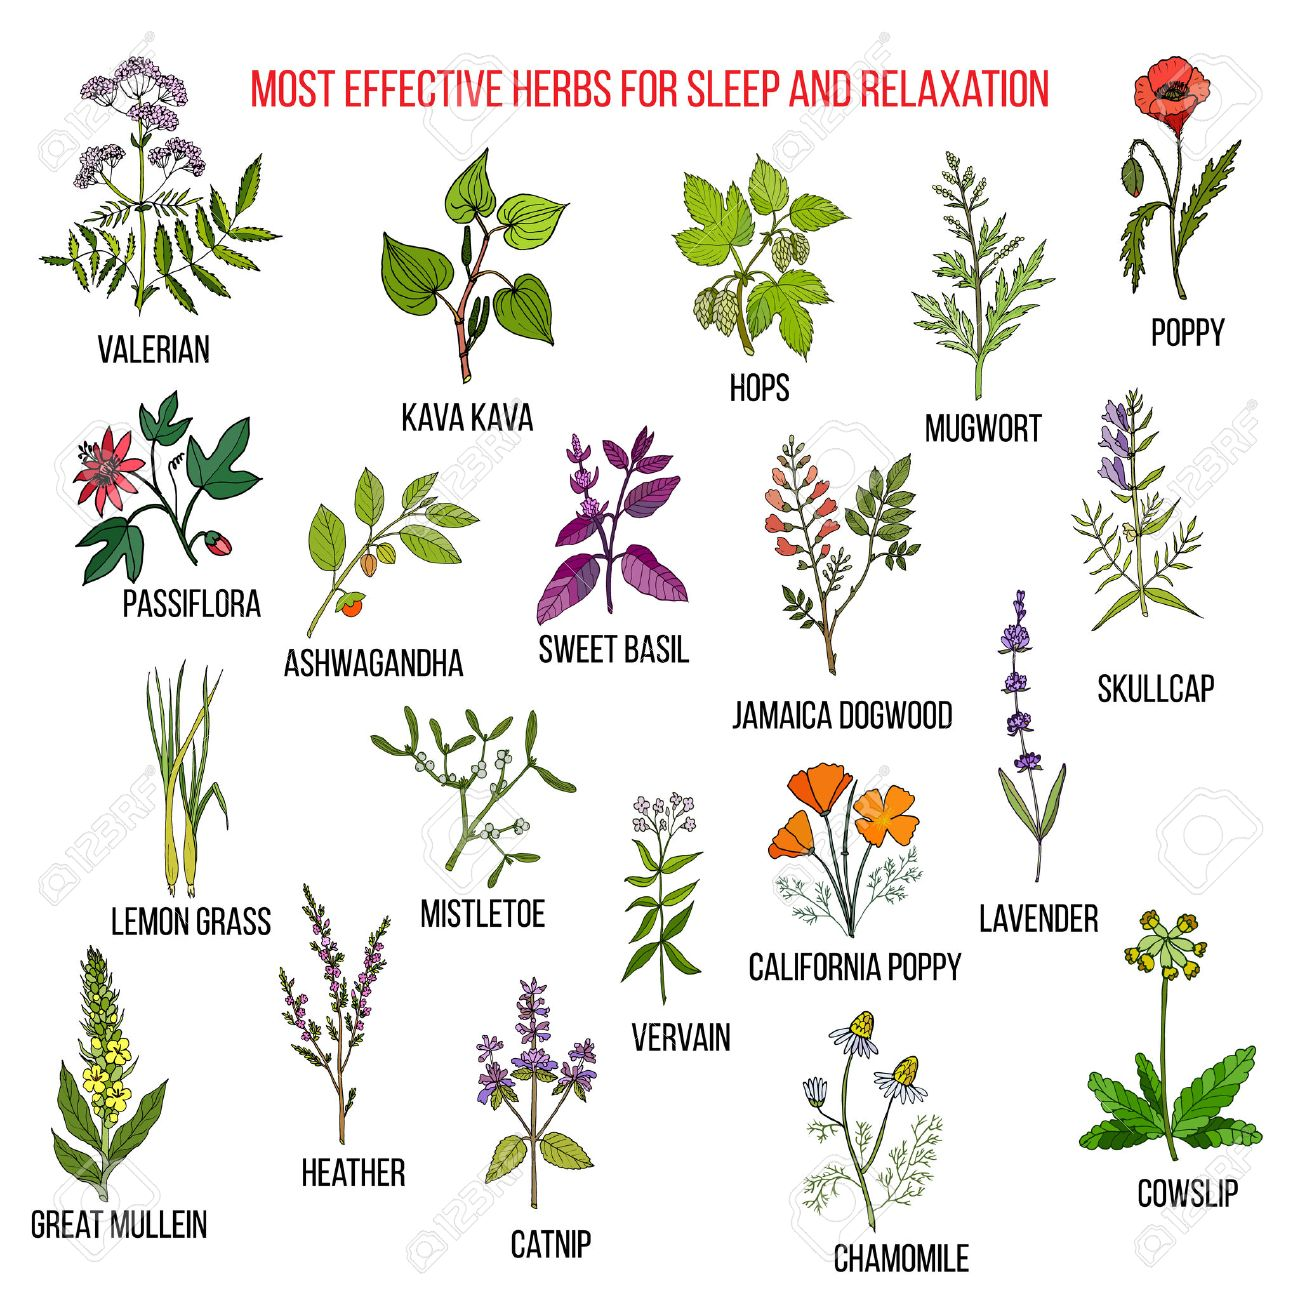 Best herbal remedies for sleep and relaxation - 74425595